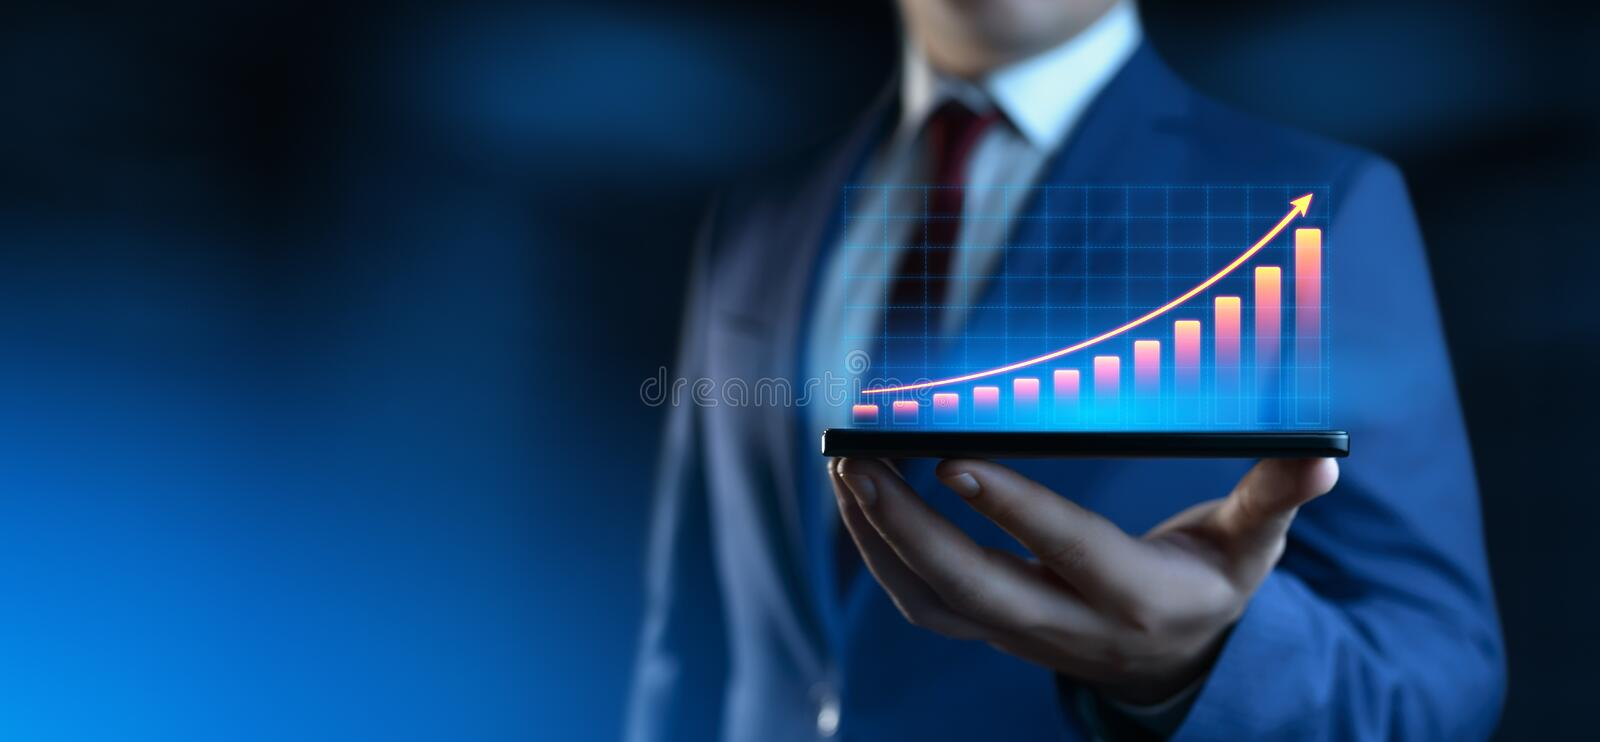 Financial Graph. Stock Market chart. Forex Investment Business Internet Technology concept.  royalty free stock photo